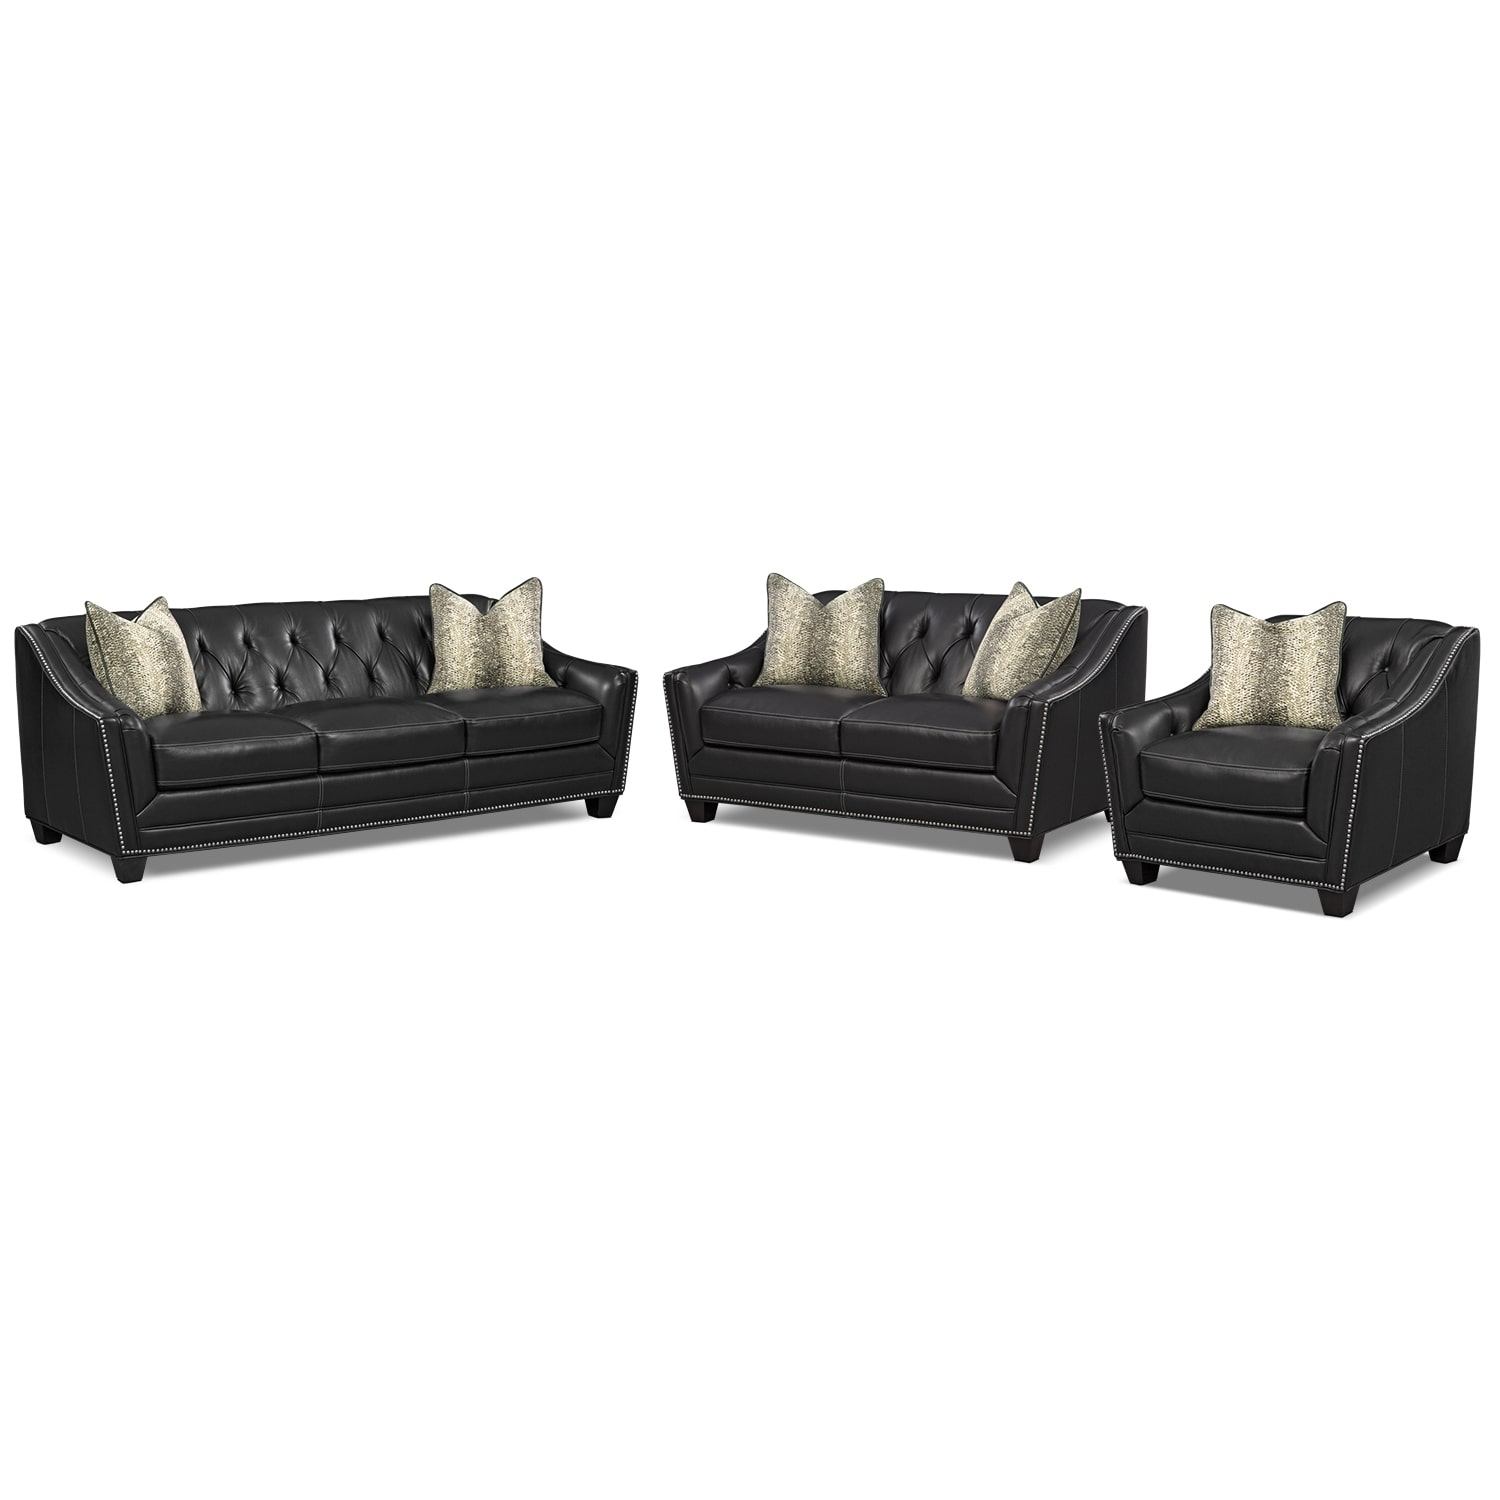 Living Room Furniture - Alexis Midnight 3 Pc. Living Room